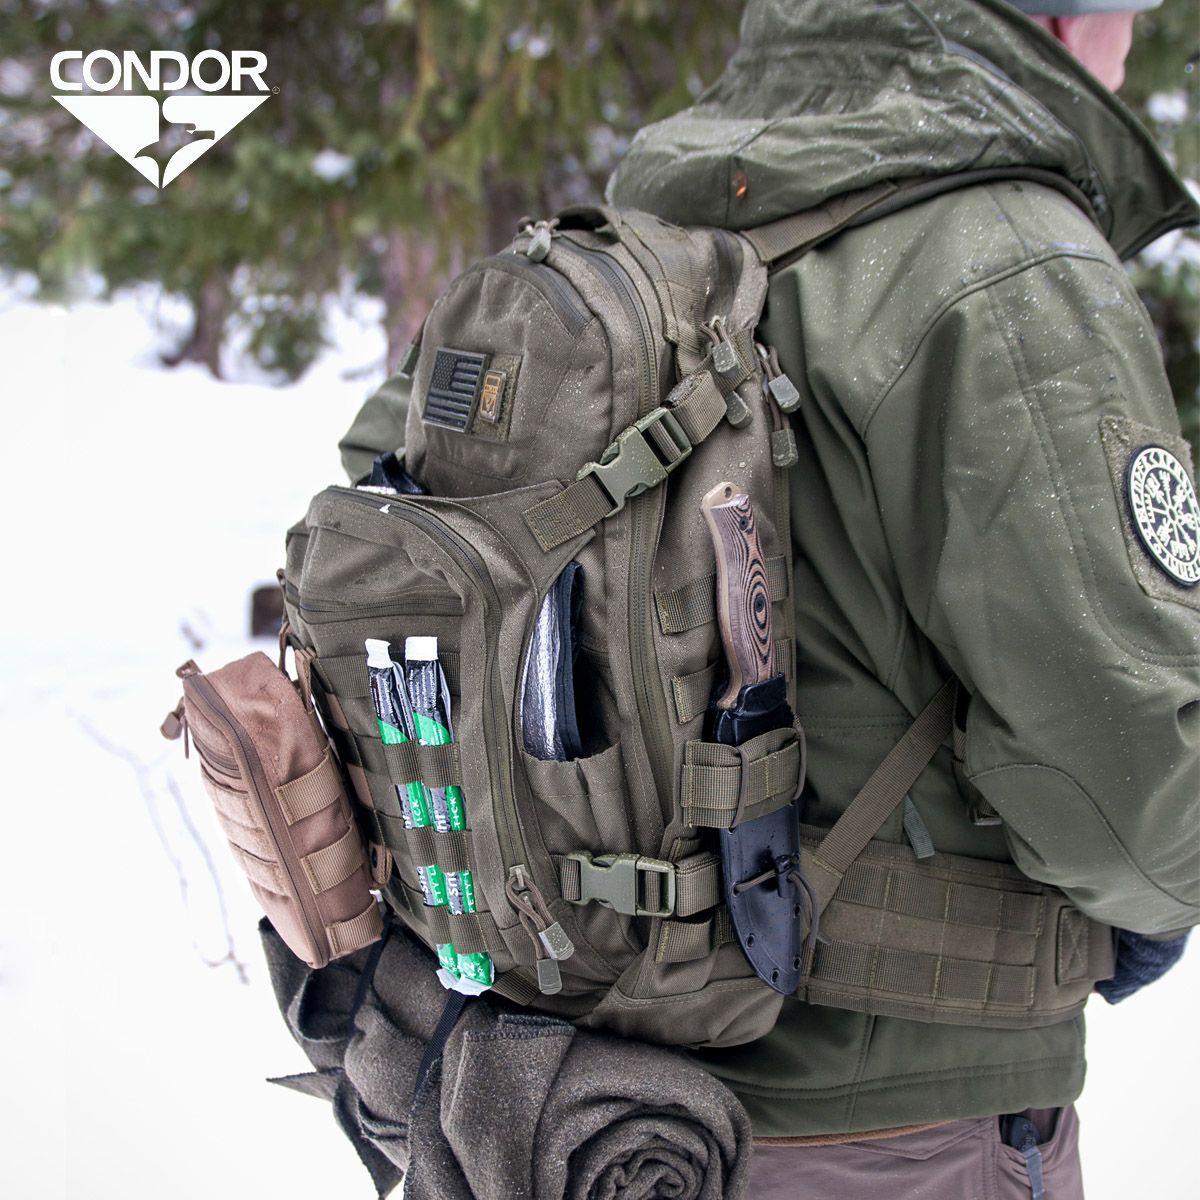 Condor Venture Pack features multiple quick-access compartments c3d8a940dce93